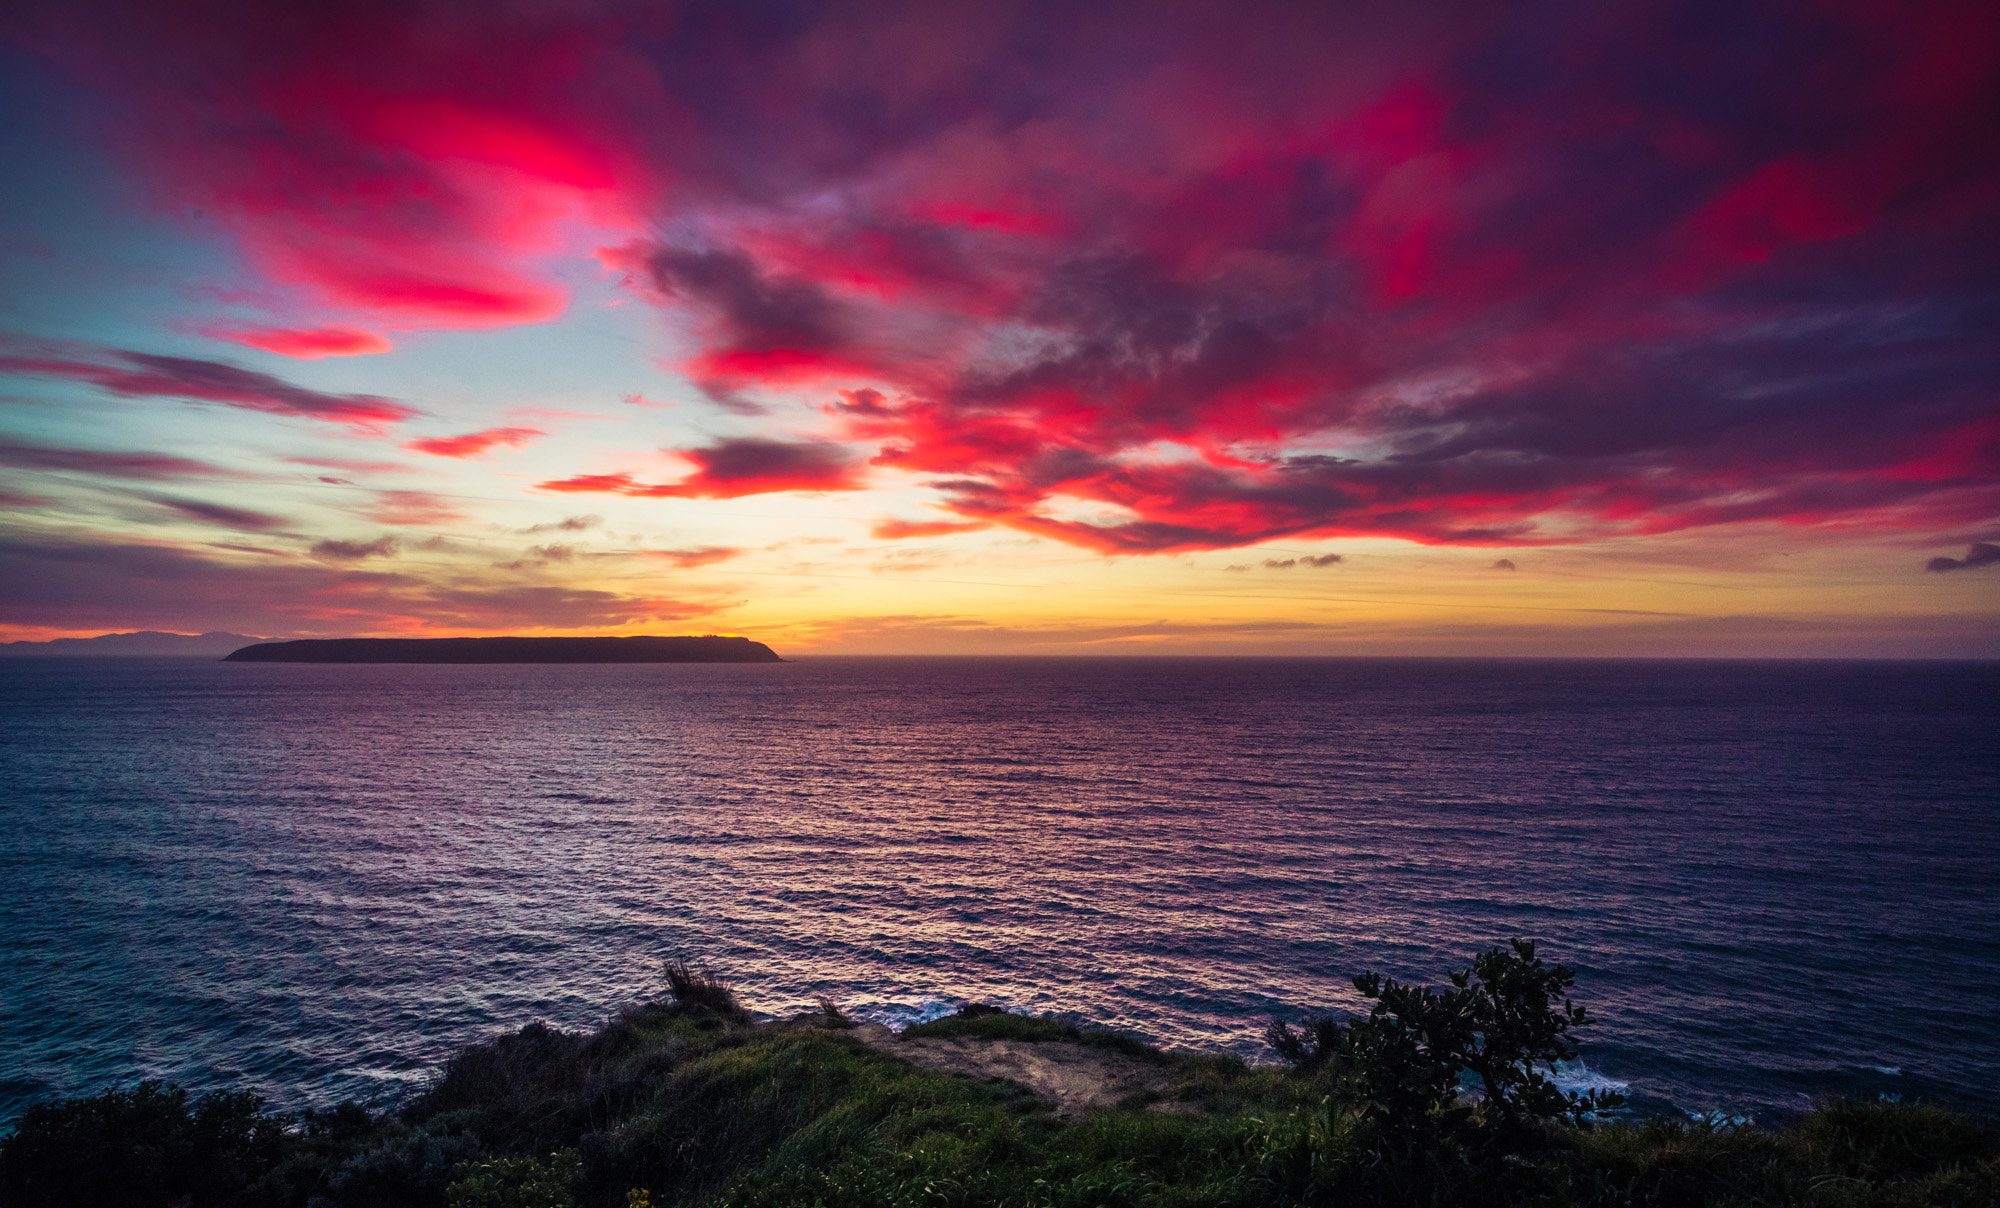 Photograph There Was a Sunset by Stewart Baird on 500px